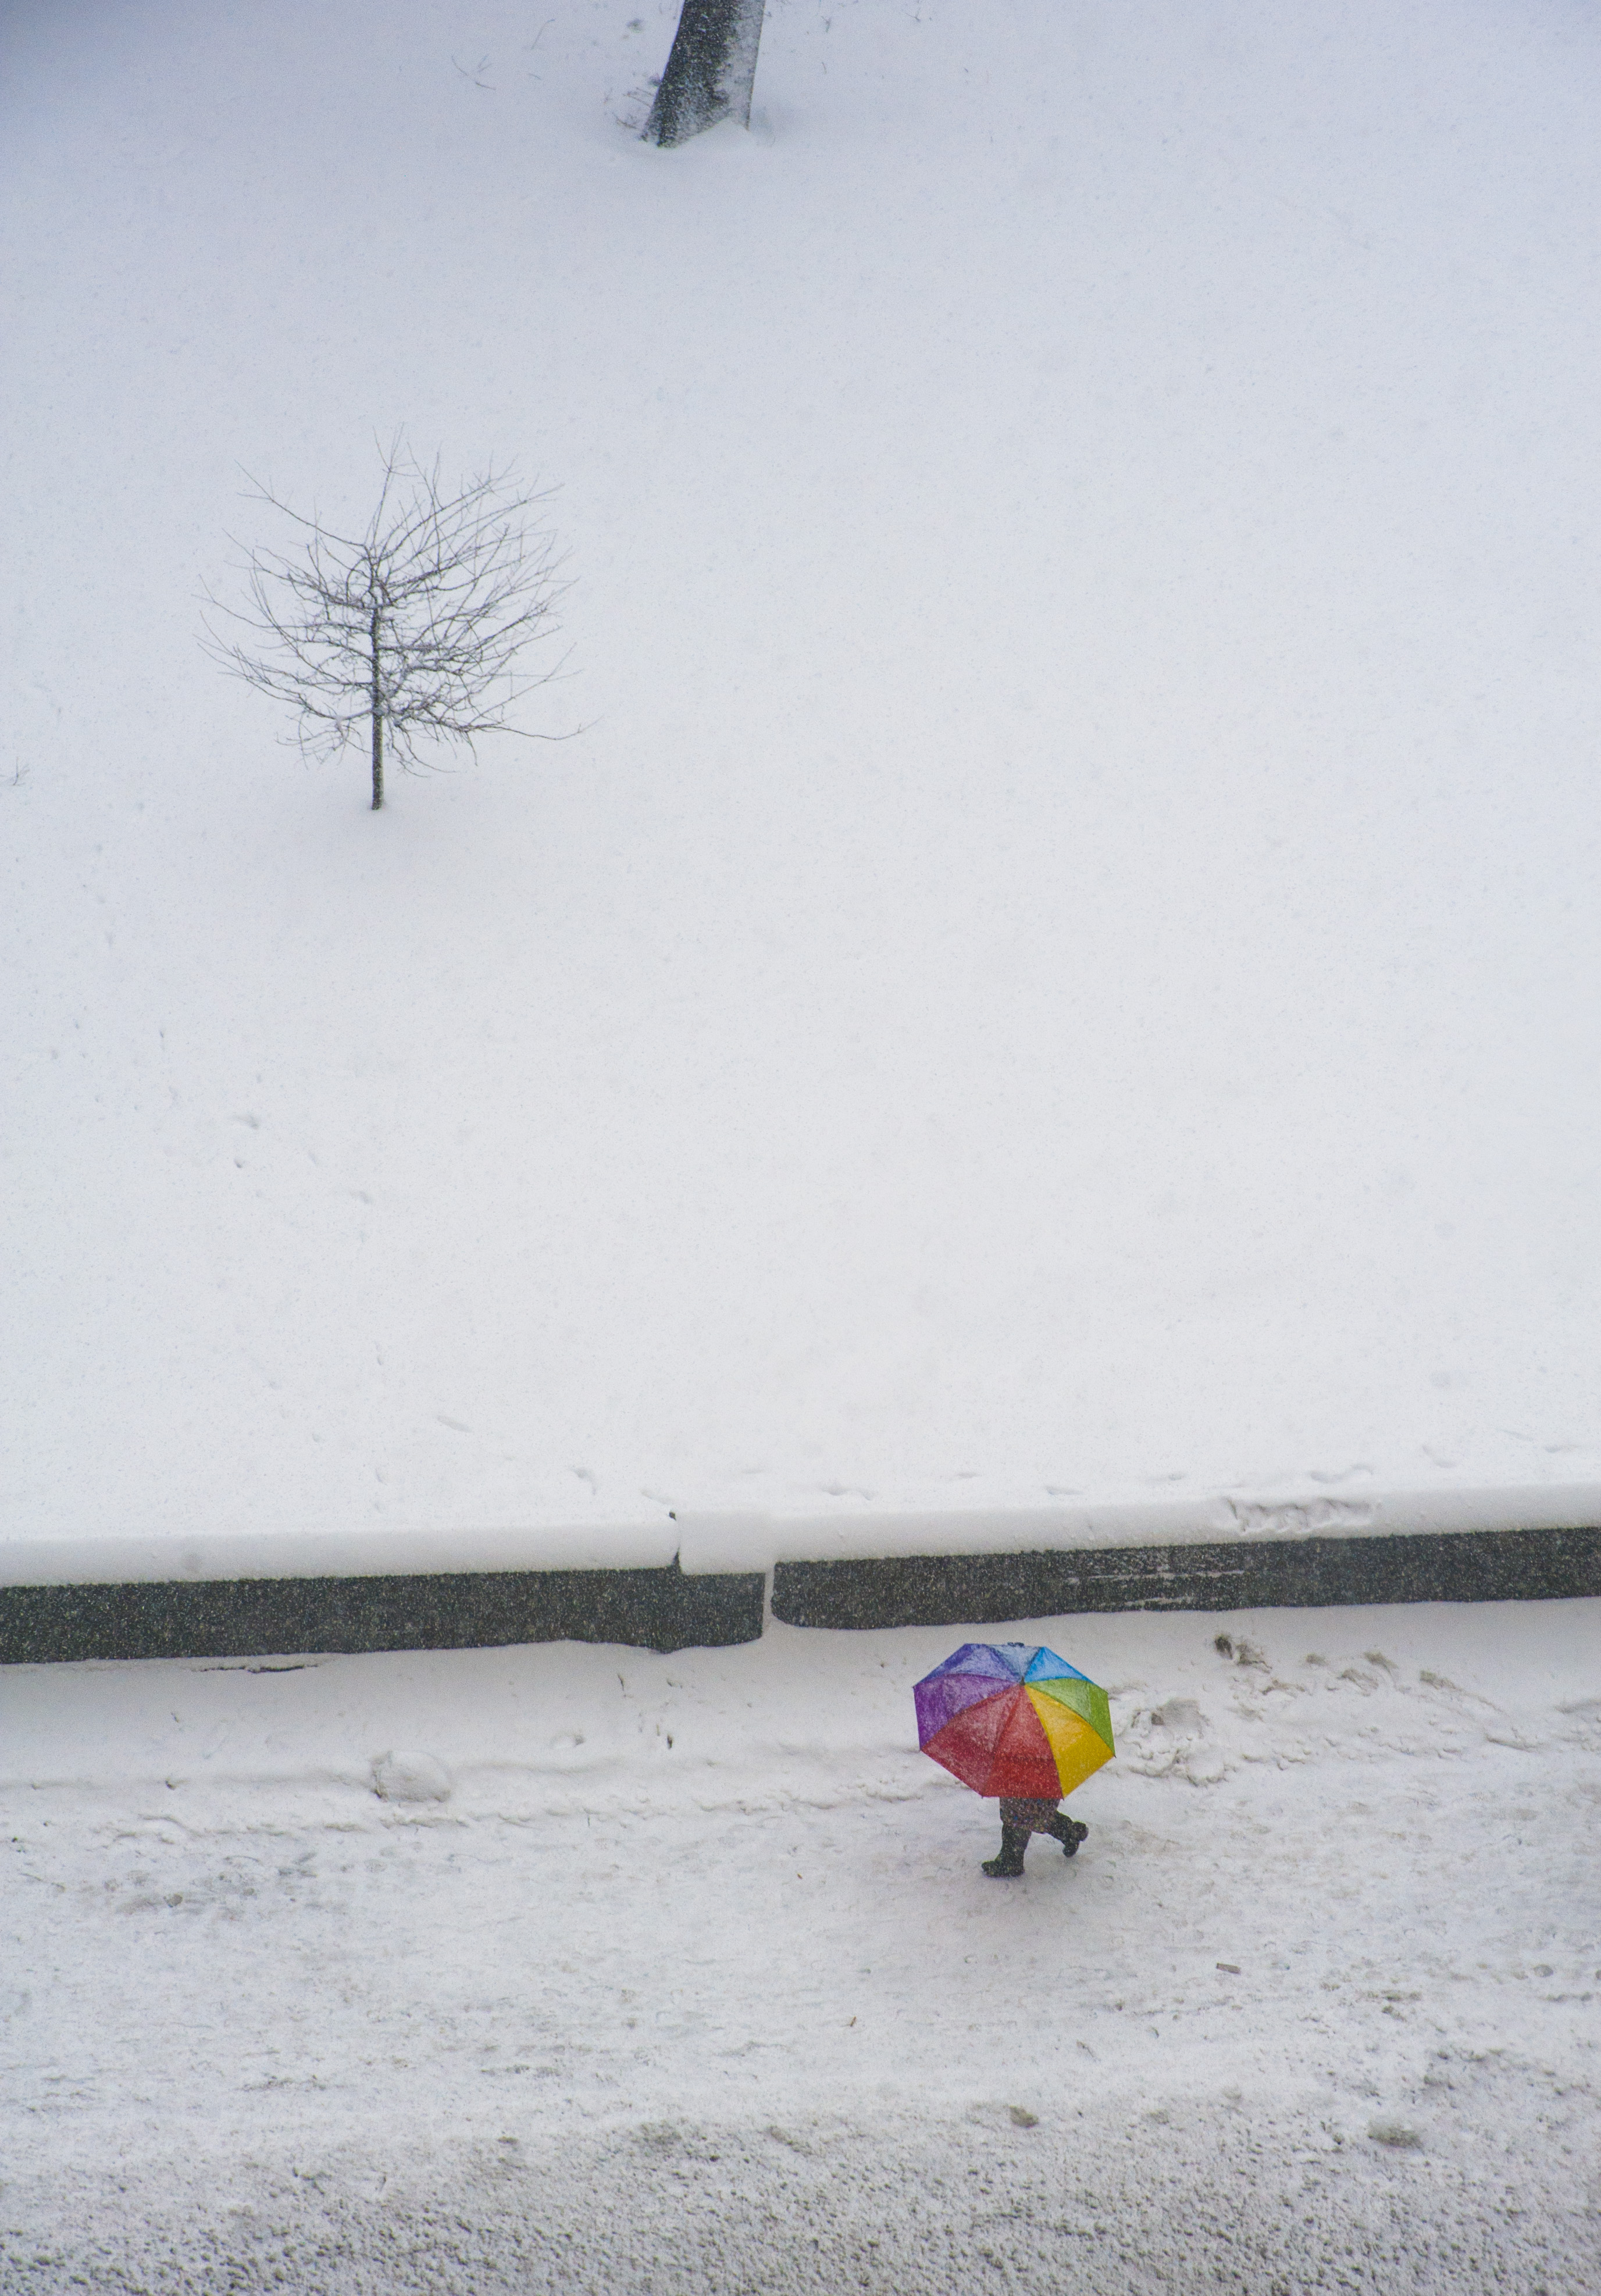 Rainbow Umbrella in Snow